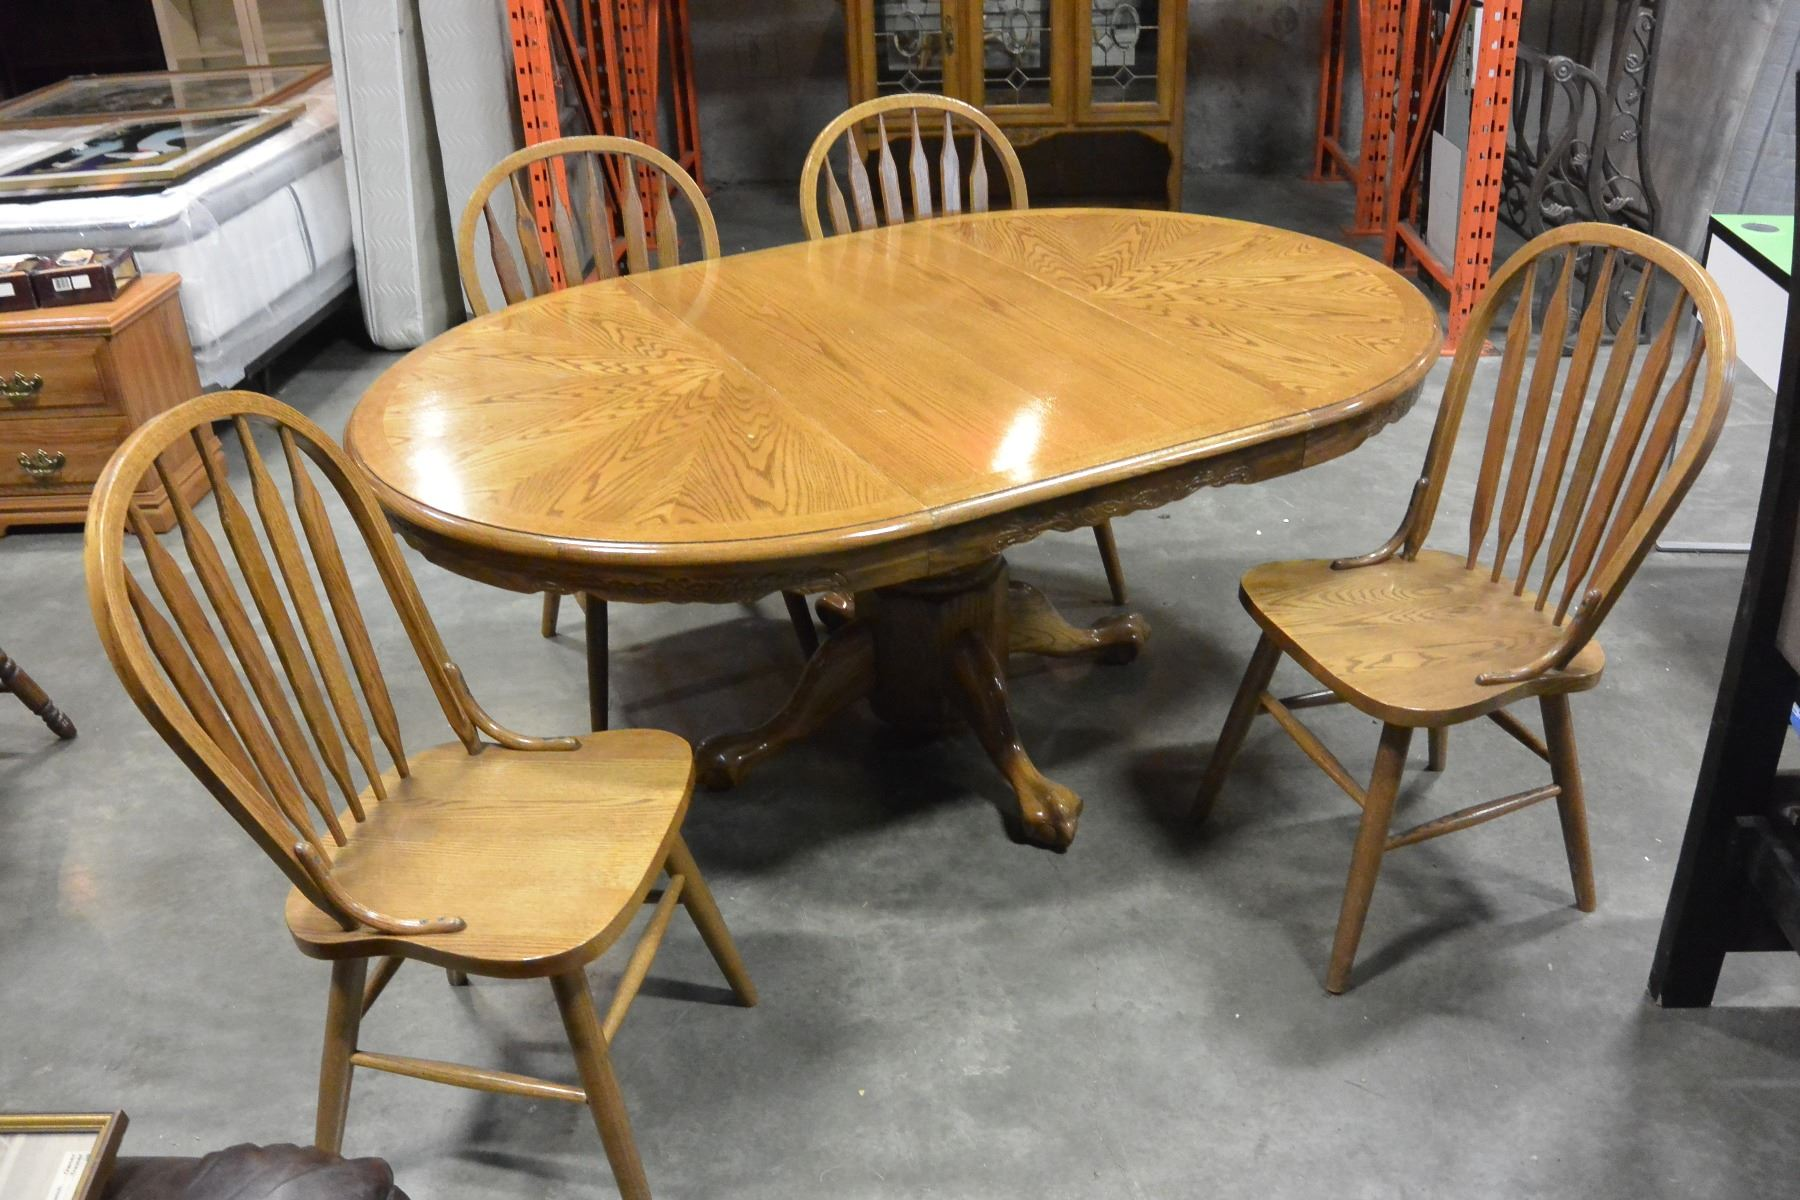 Round Oak Dining Table With Leaf And 4 Chairs